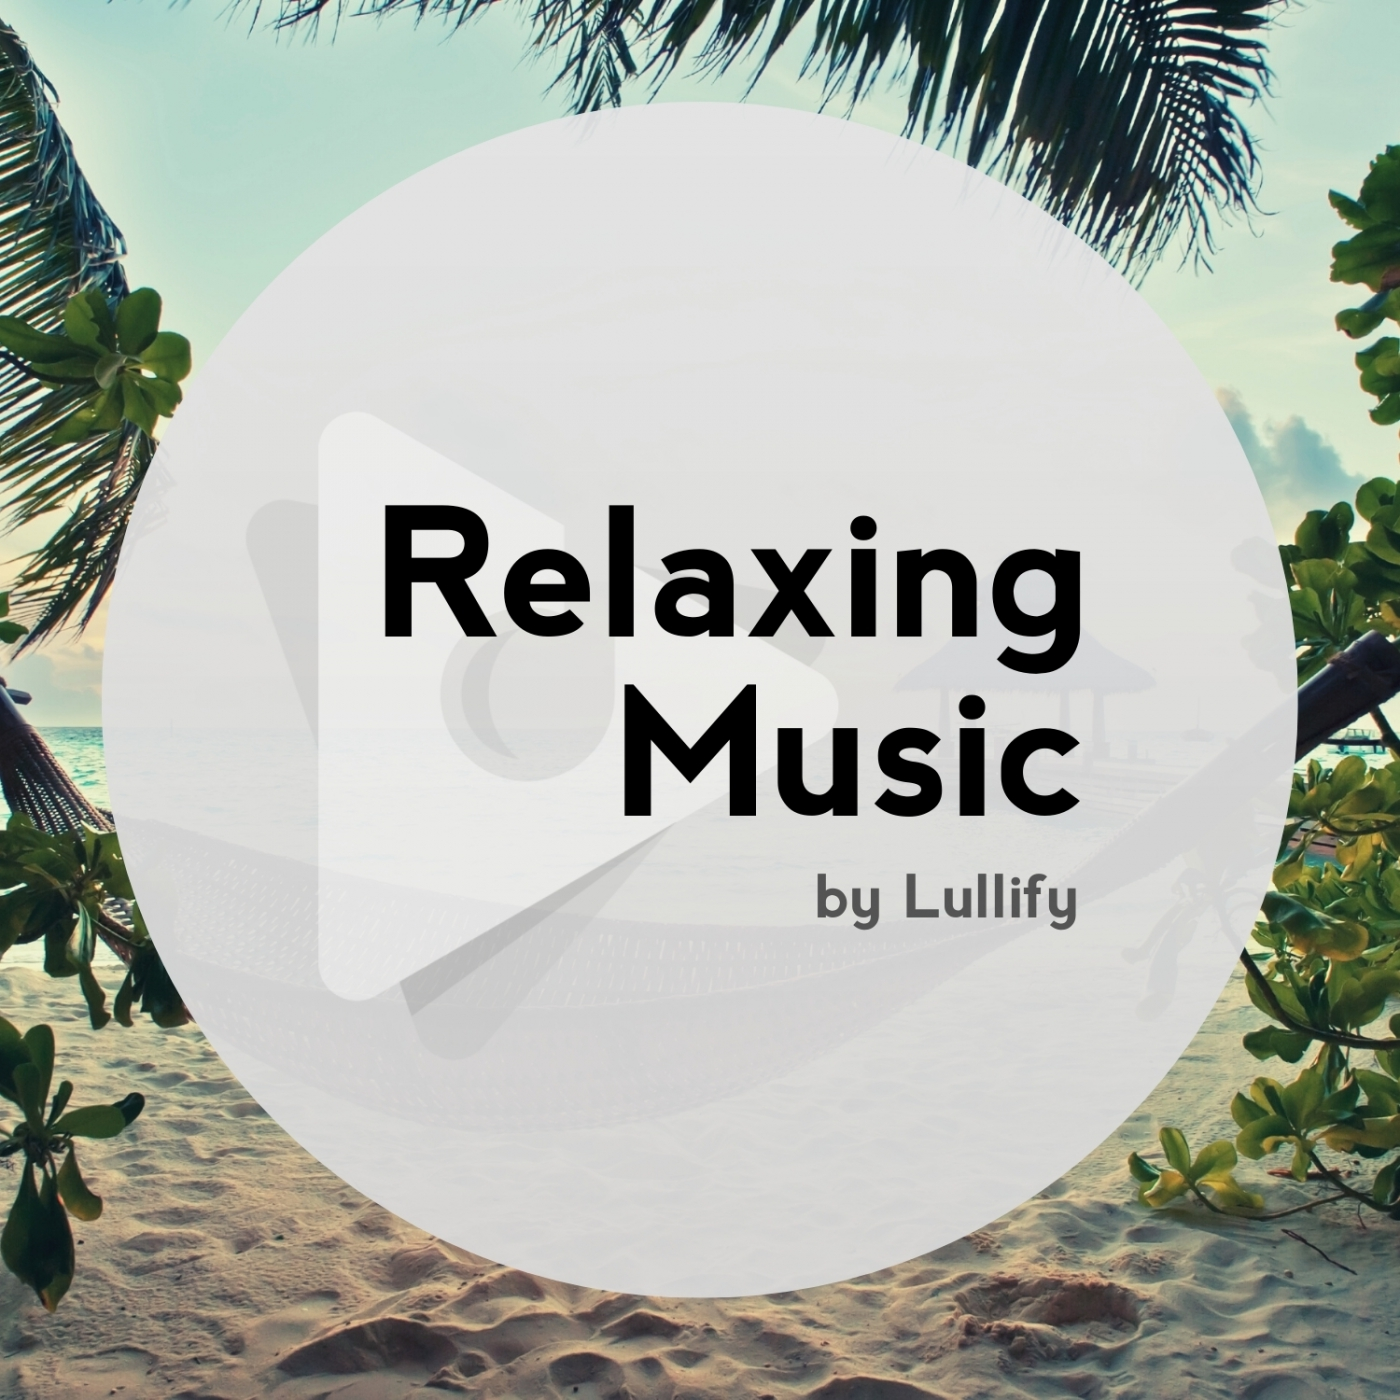 Relaxing Music by Lullify